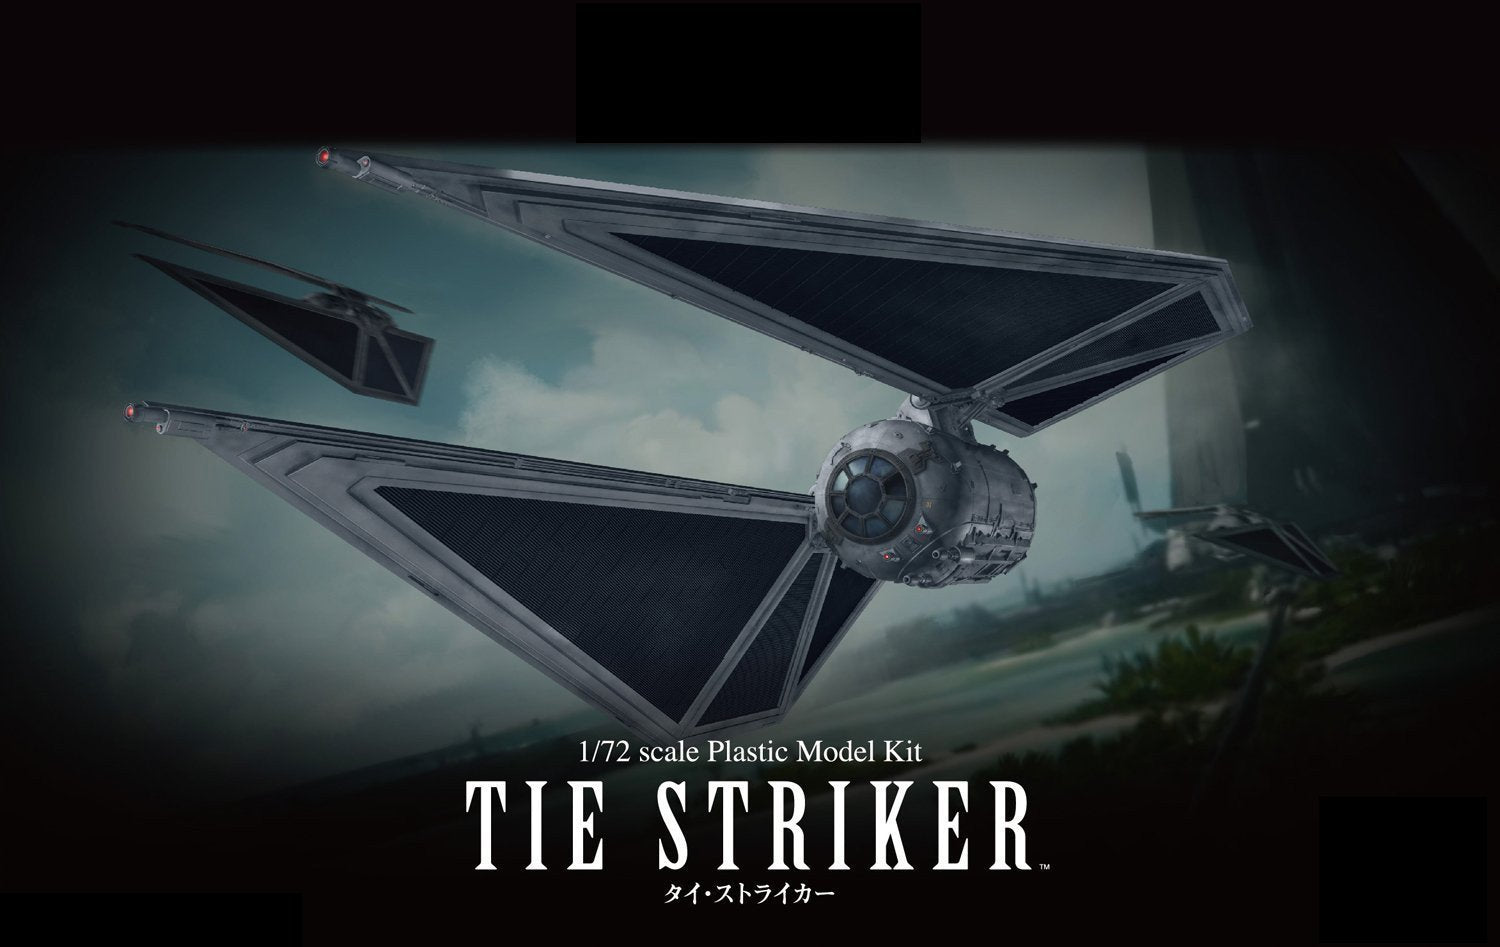 Tie Striker 1/72 Scale Model Kit